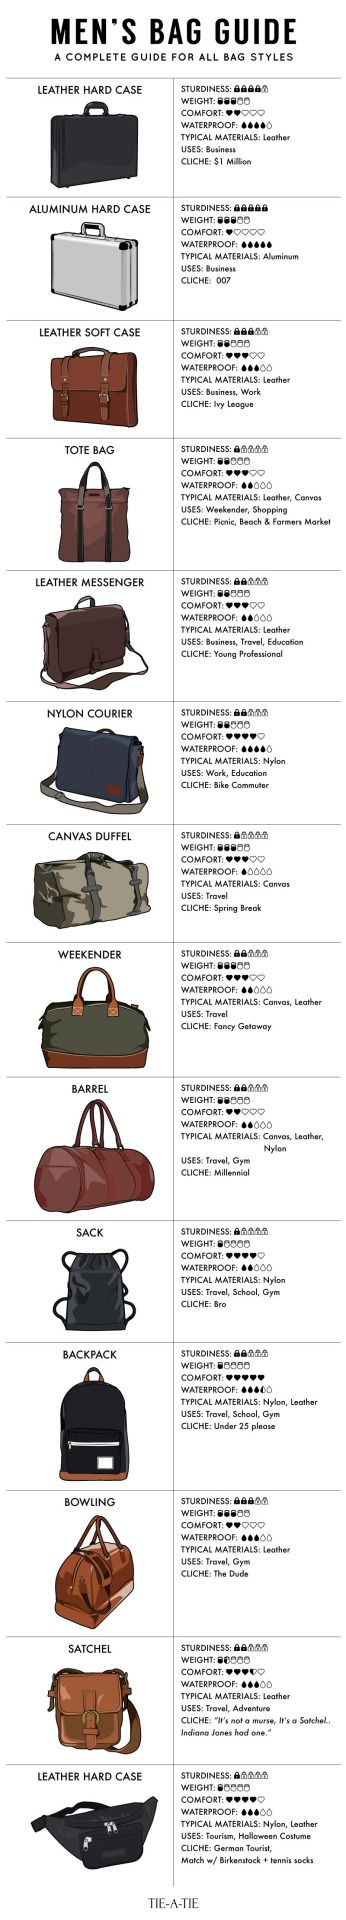 A Guide To Men's Bags, Briefcases and Murses.